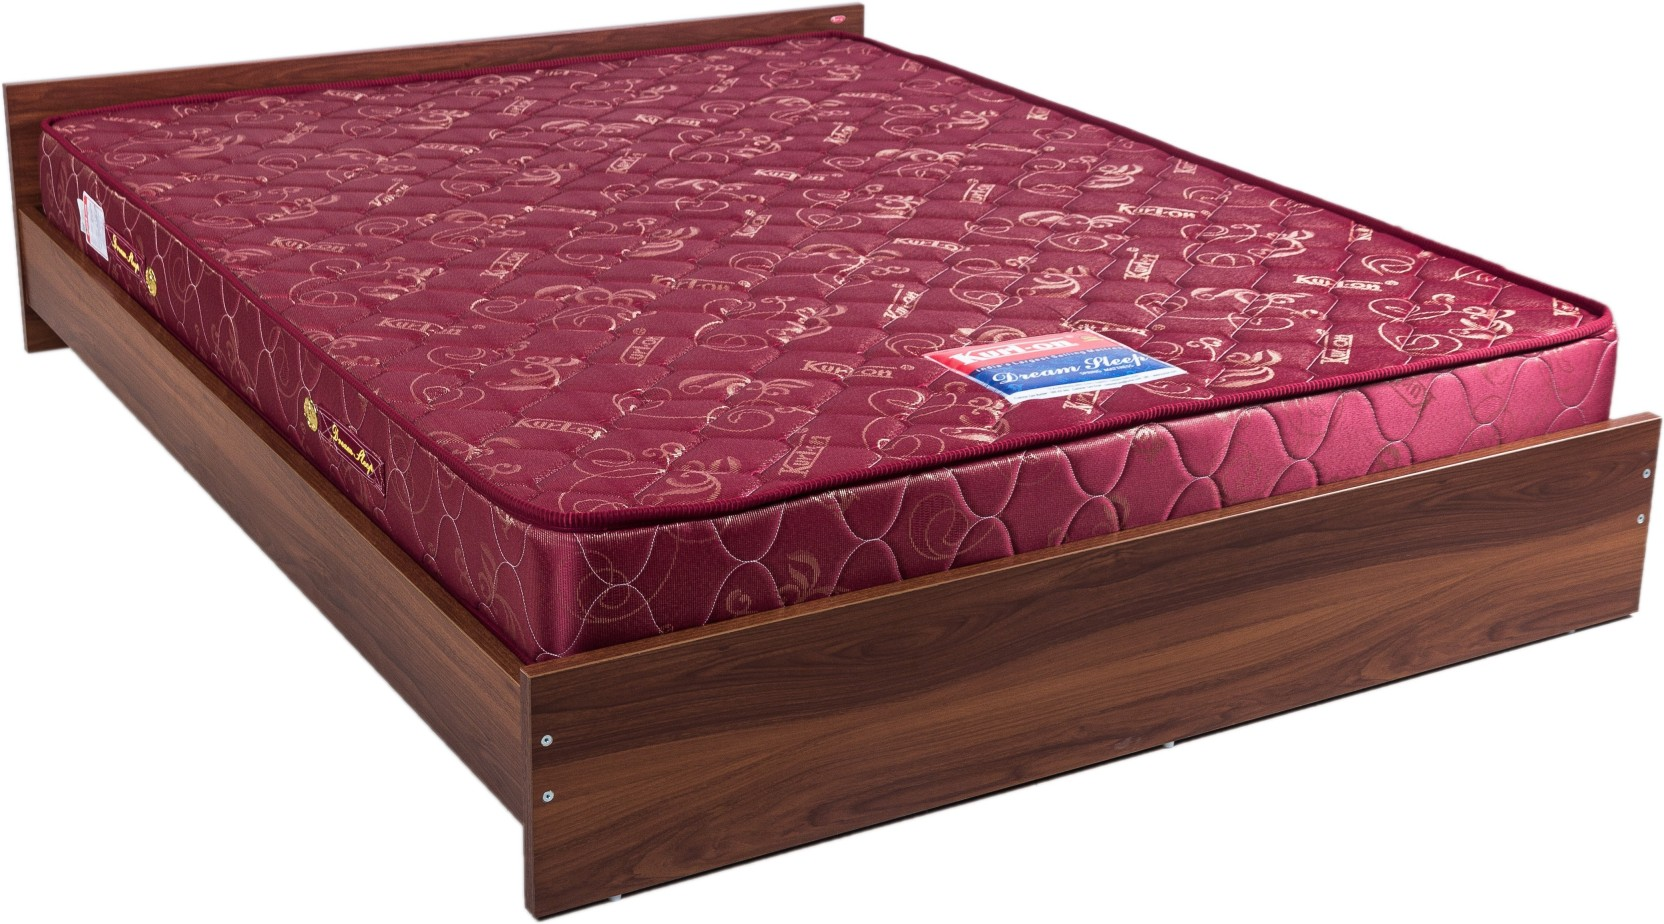 Kurlon Dream Sleep 6 Inch Queen Bonnell Spring Mattress Price In India Buy Kurlon Dream Sleep